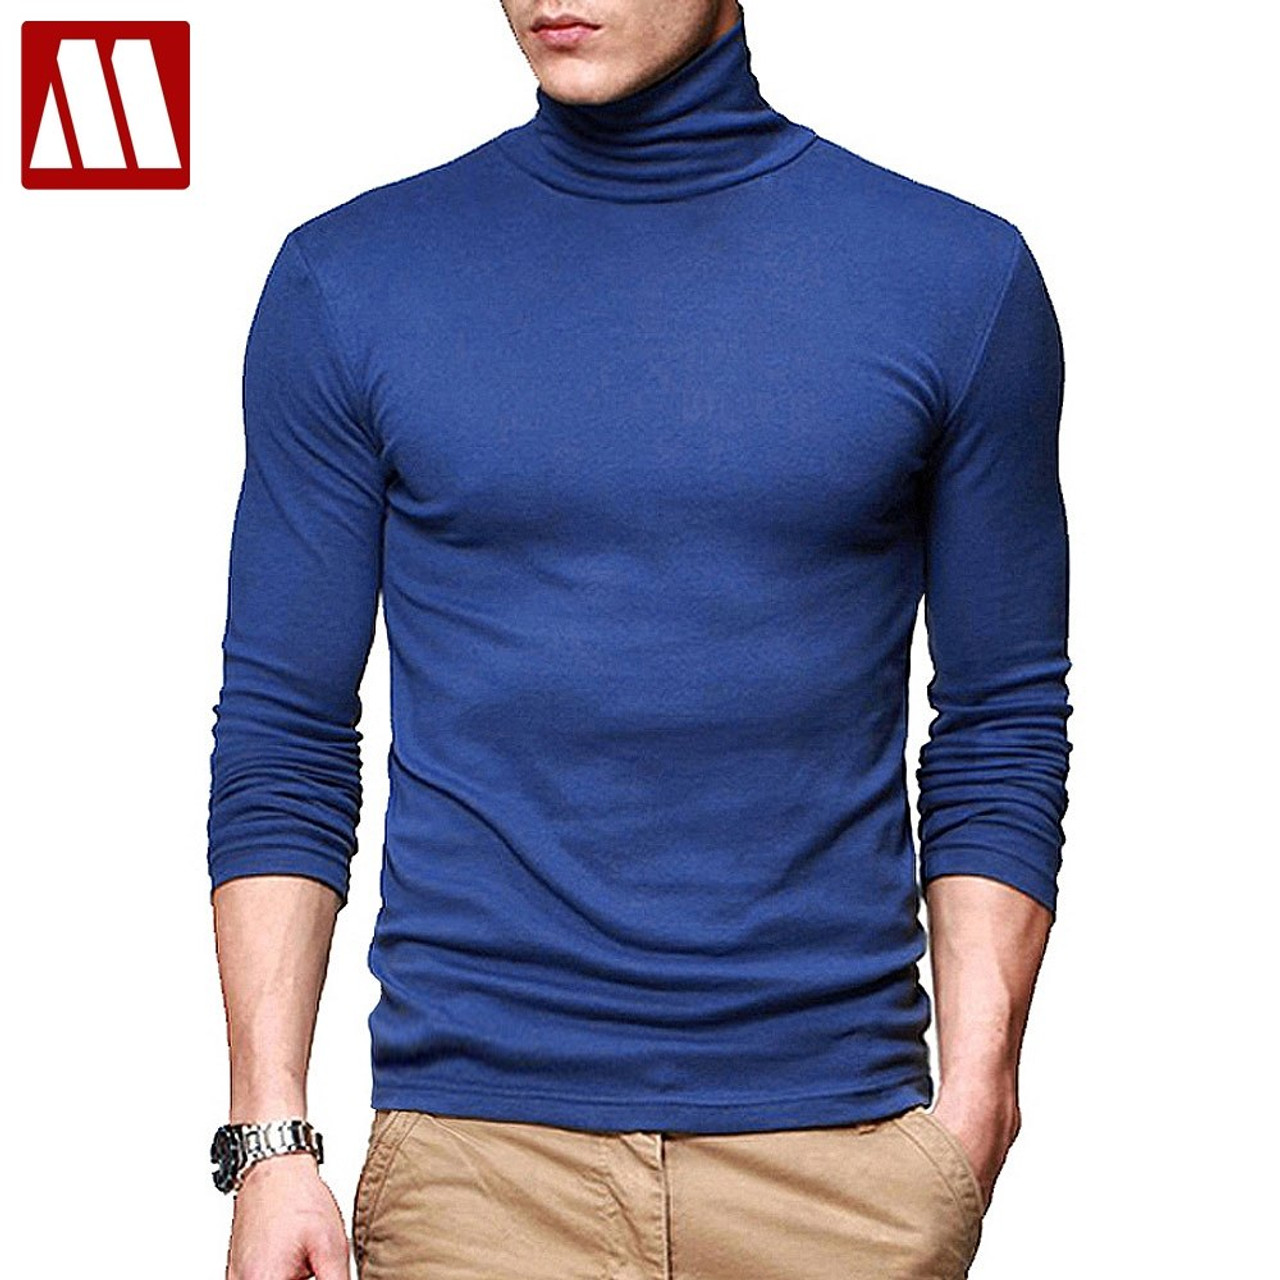 2019 Spring Amp Fall New Men S Fashion Brands Long Sleeve T Shirt